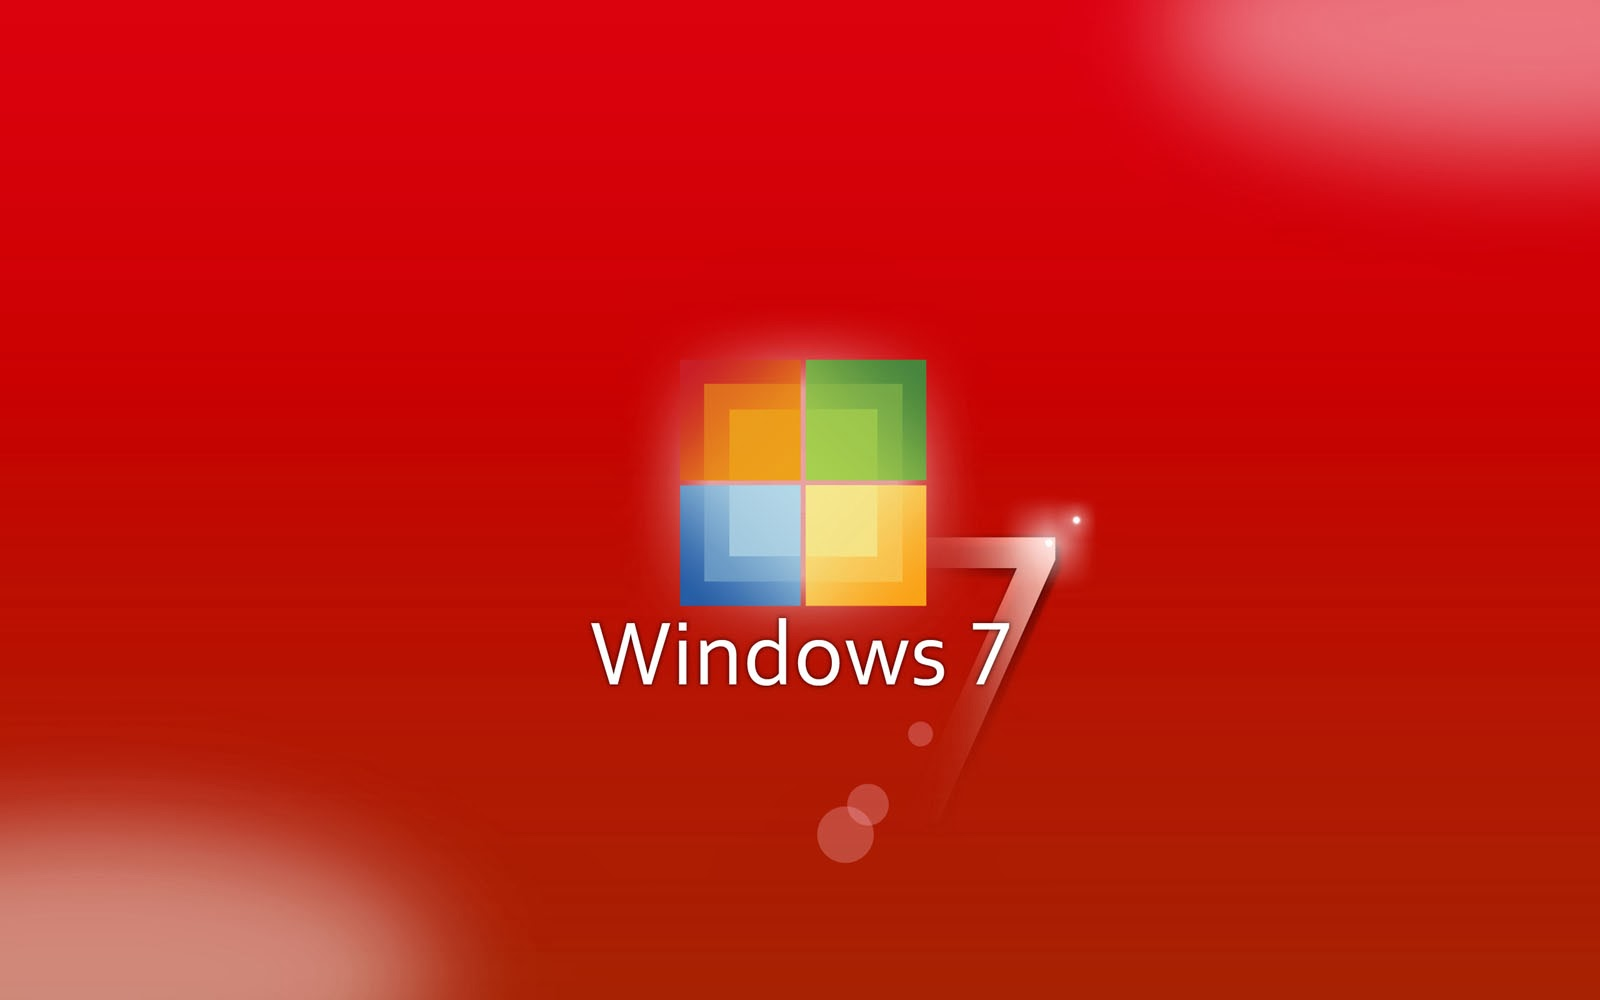 Windows Xp 3d Wallpaper Free Download Wallpapers Windows 7 Red Wallpapers